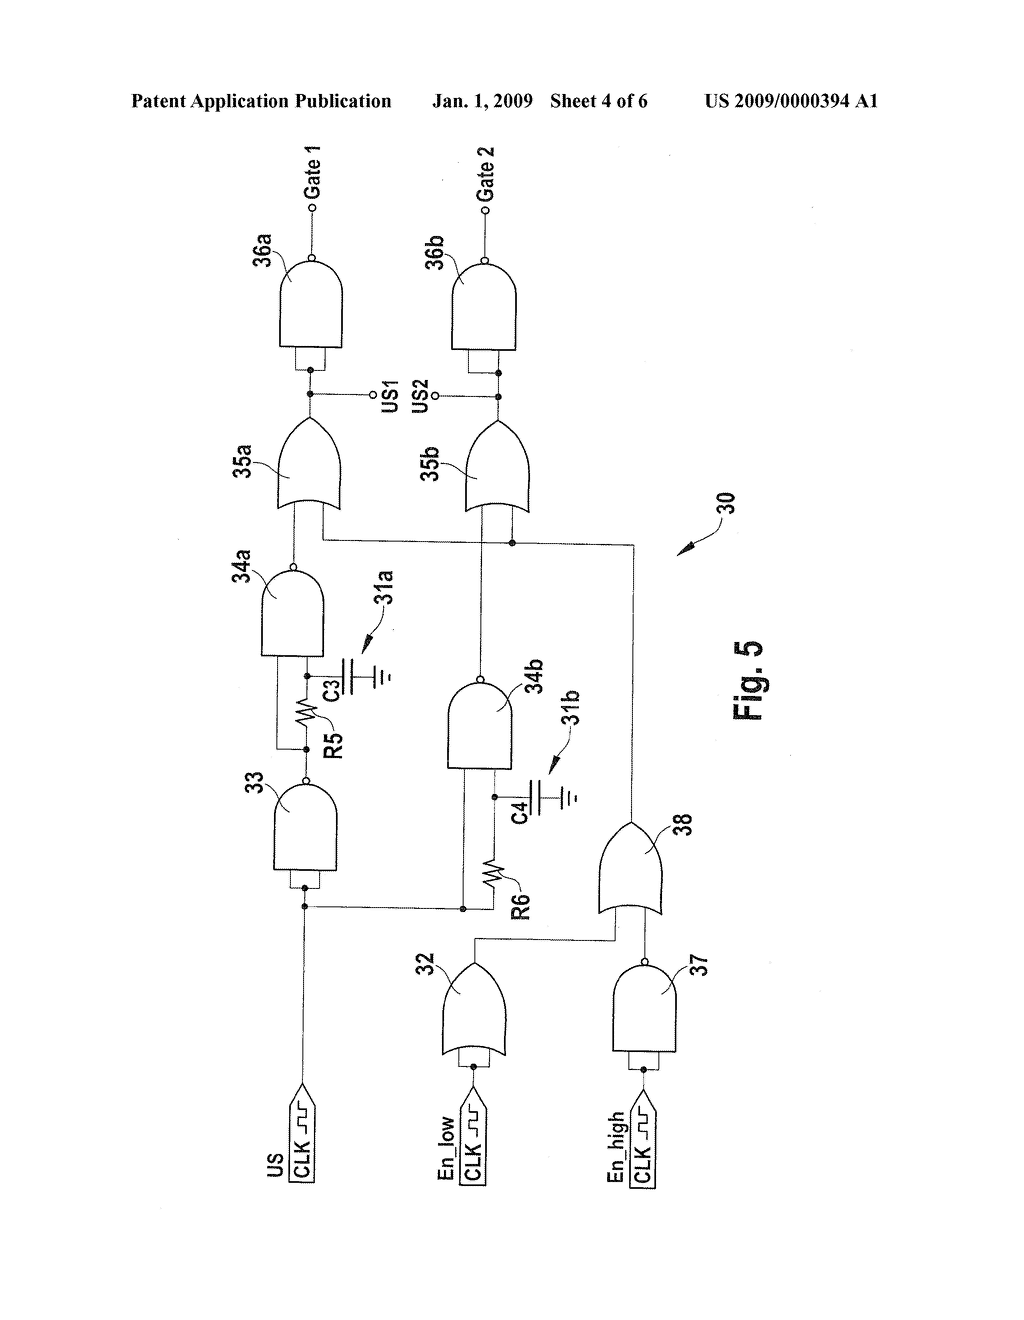 Ultrasonic Sensor With Reciprocal Transmitting And Receiving Circuit Diagram Schematic Image 05